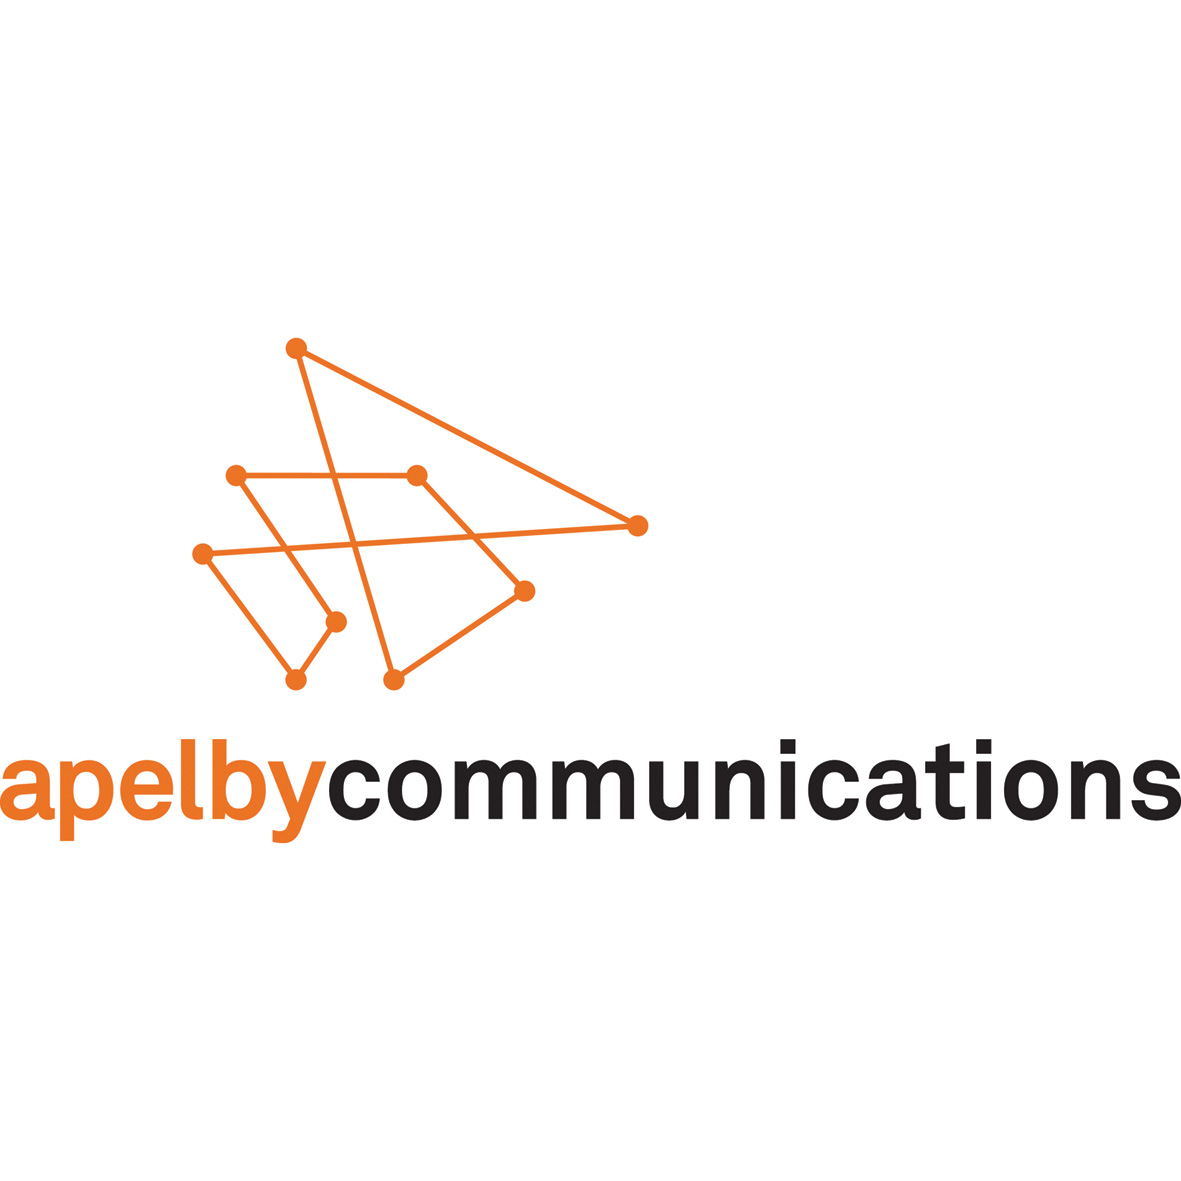 APELBY COMMUNICATIONS